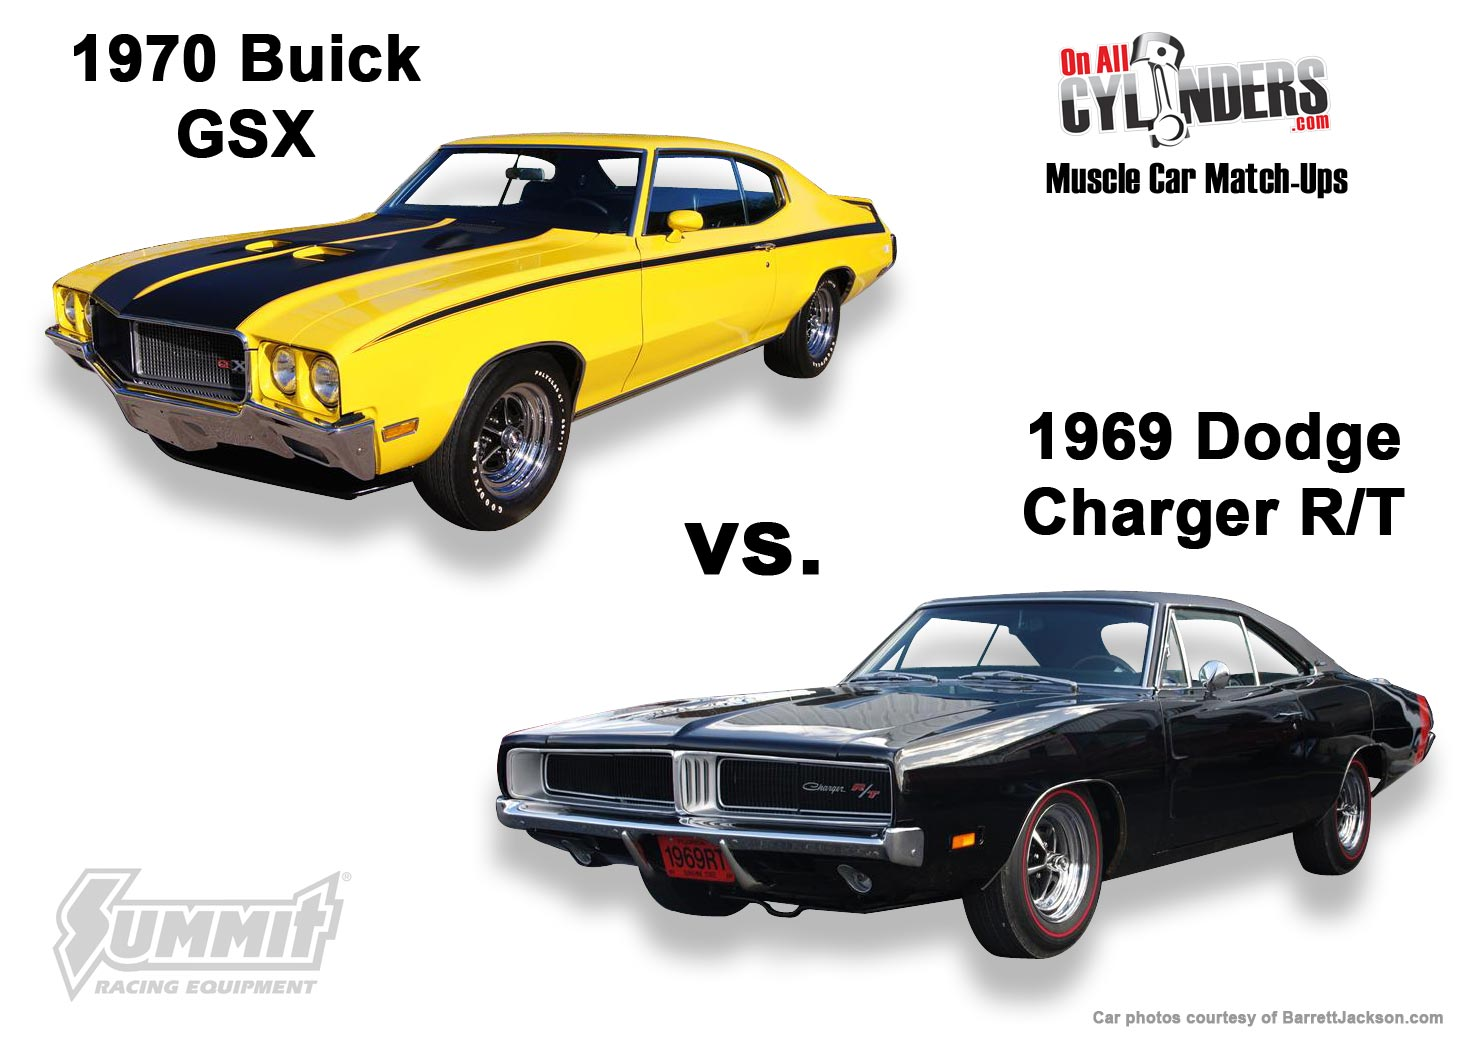 vote! muscle car match-ups: round 2 - onallcylinders